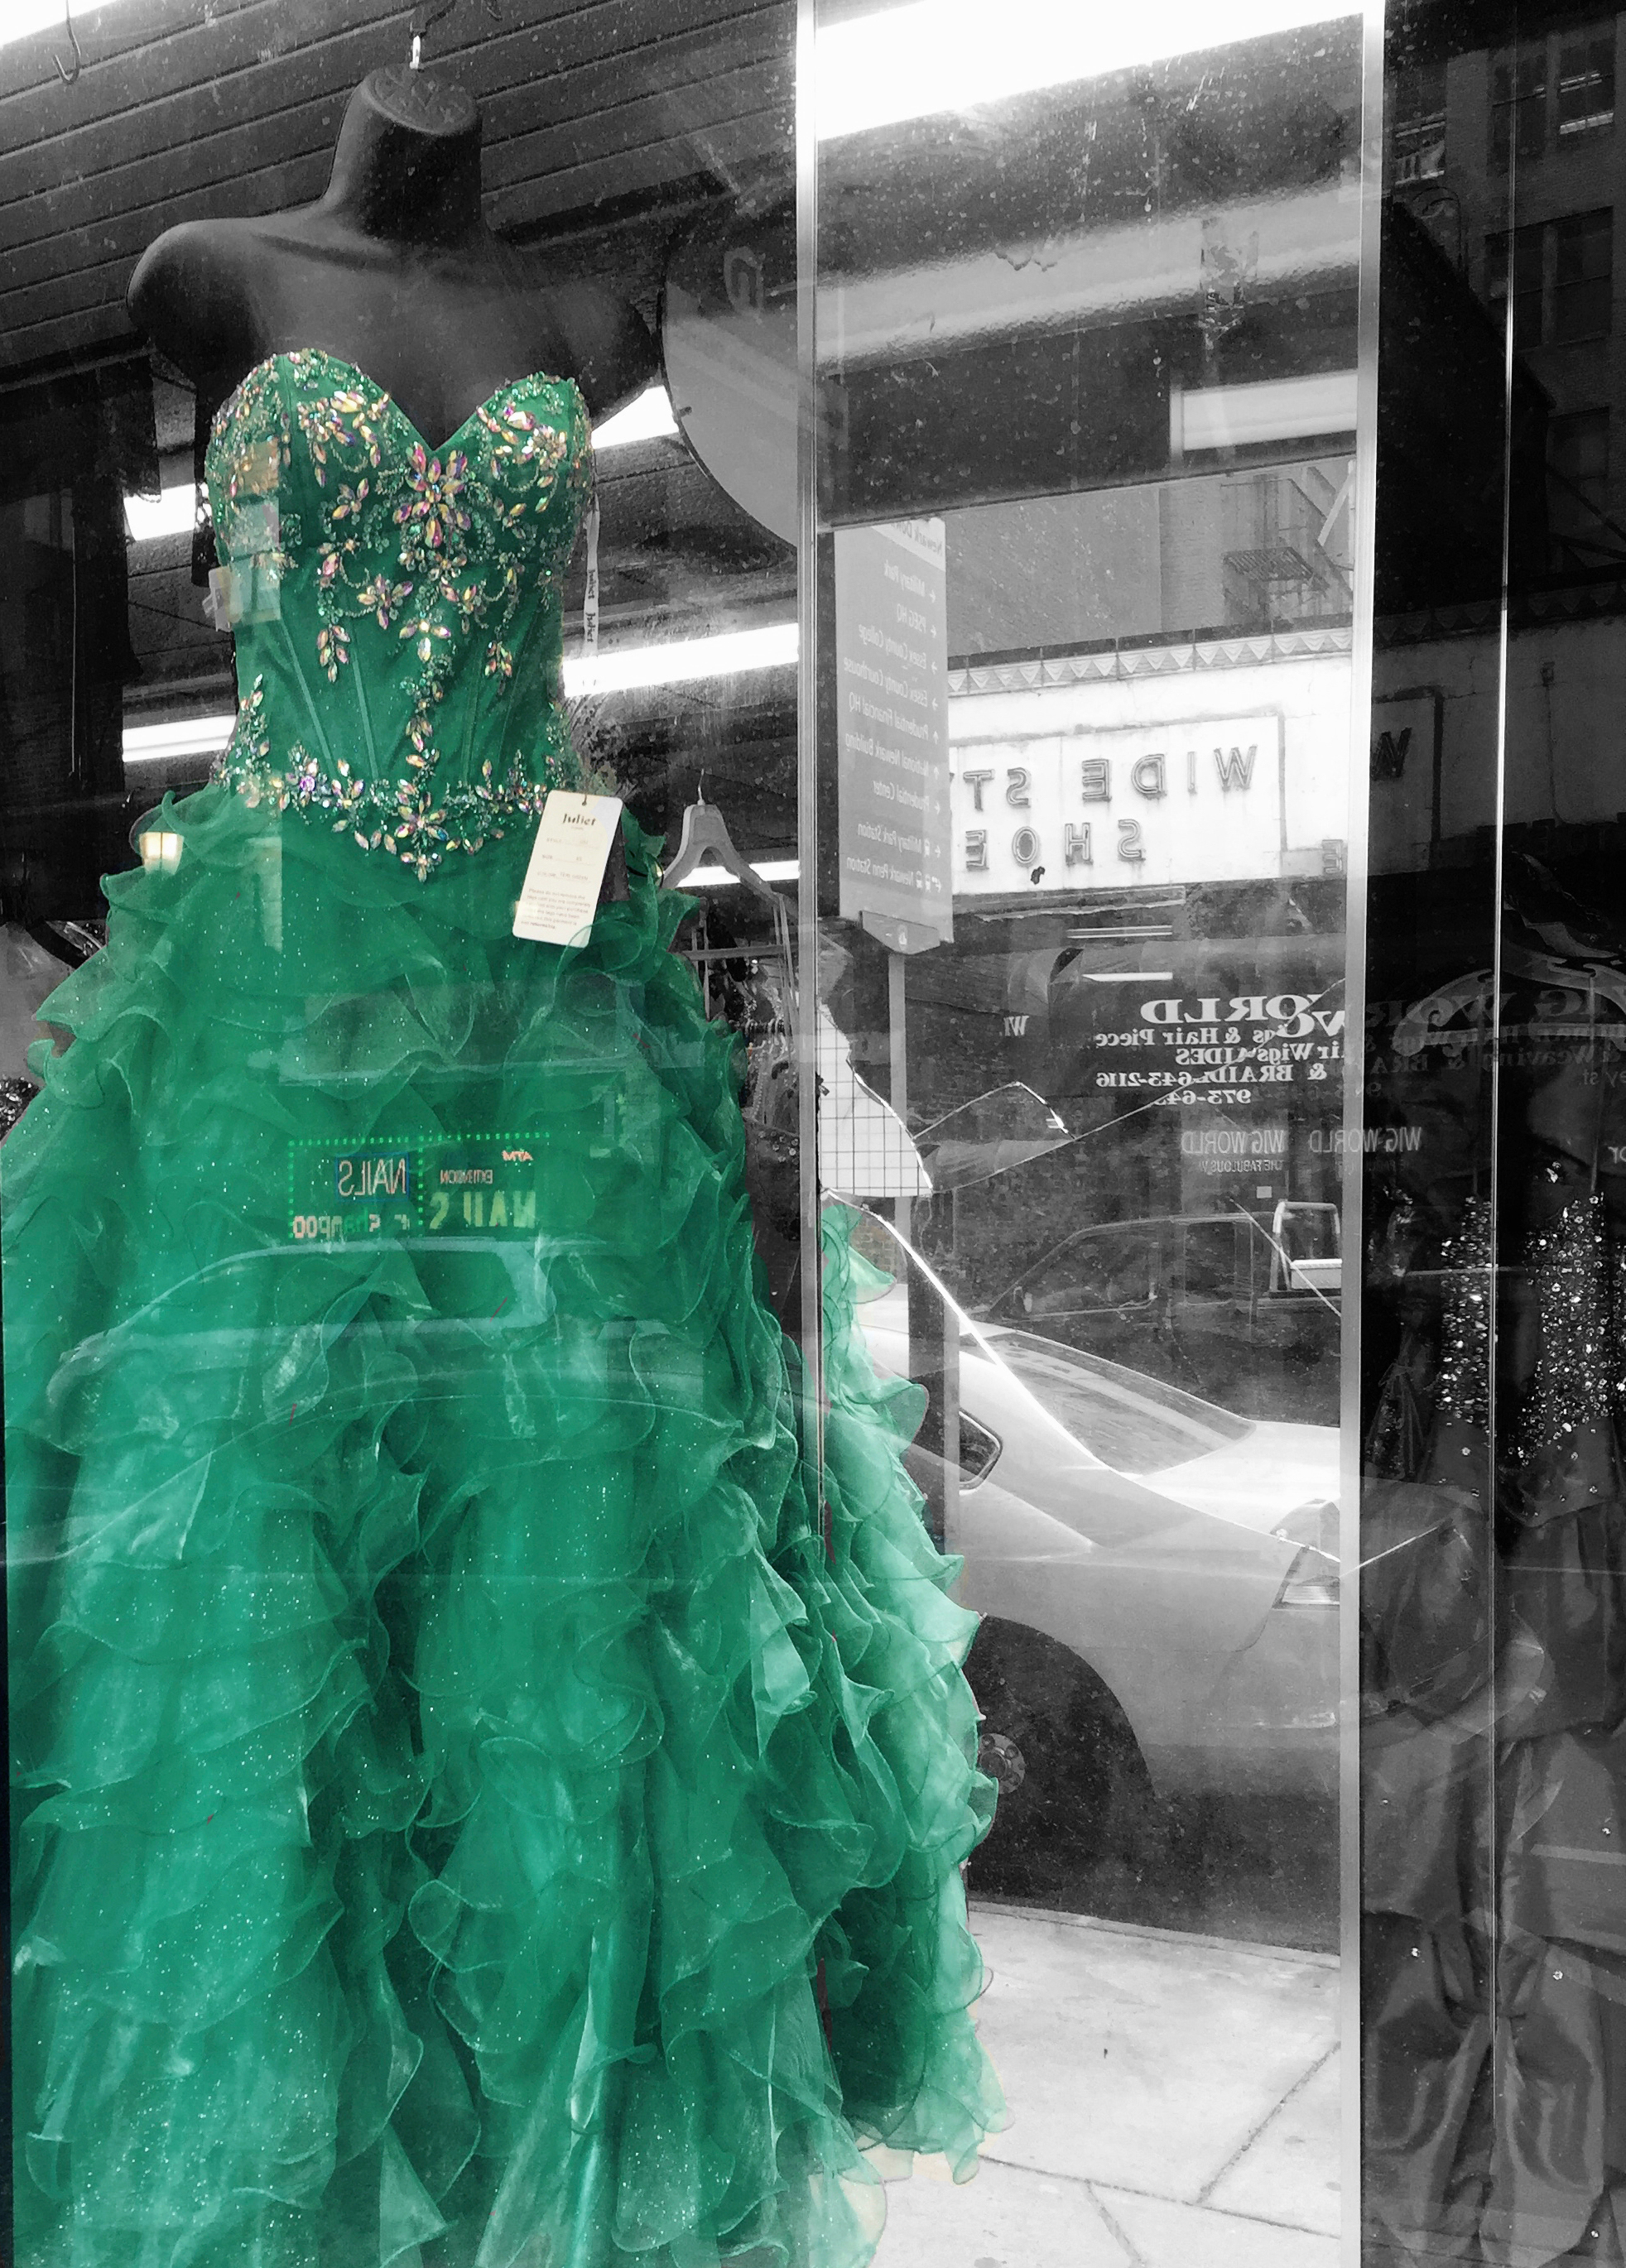 The Green Gown